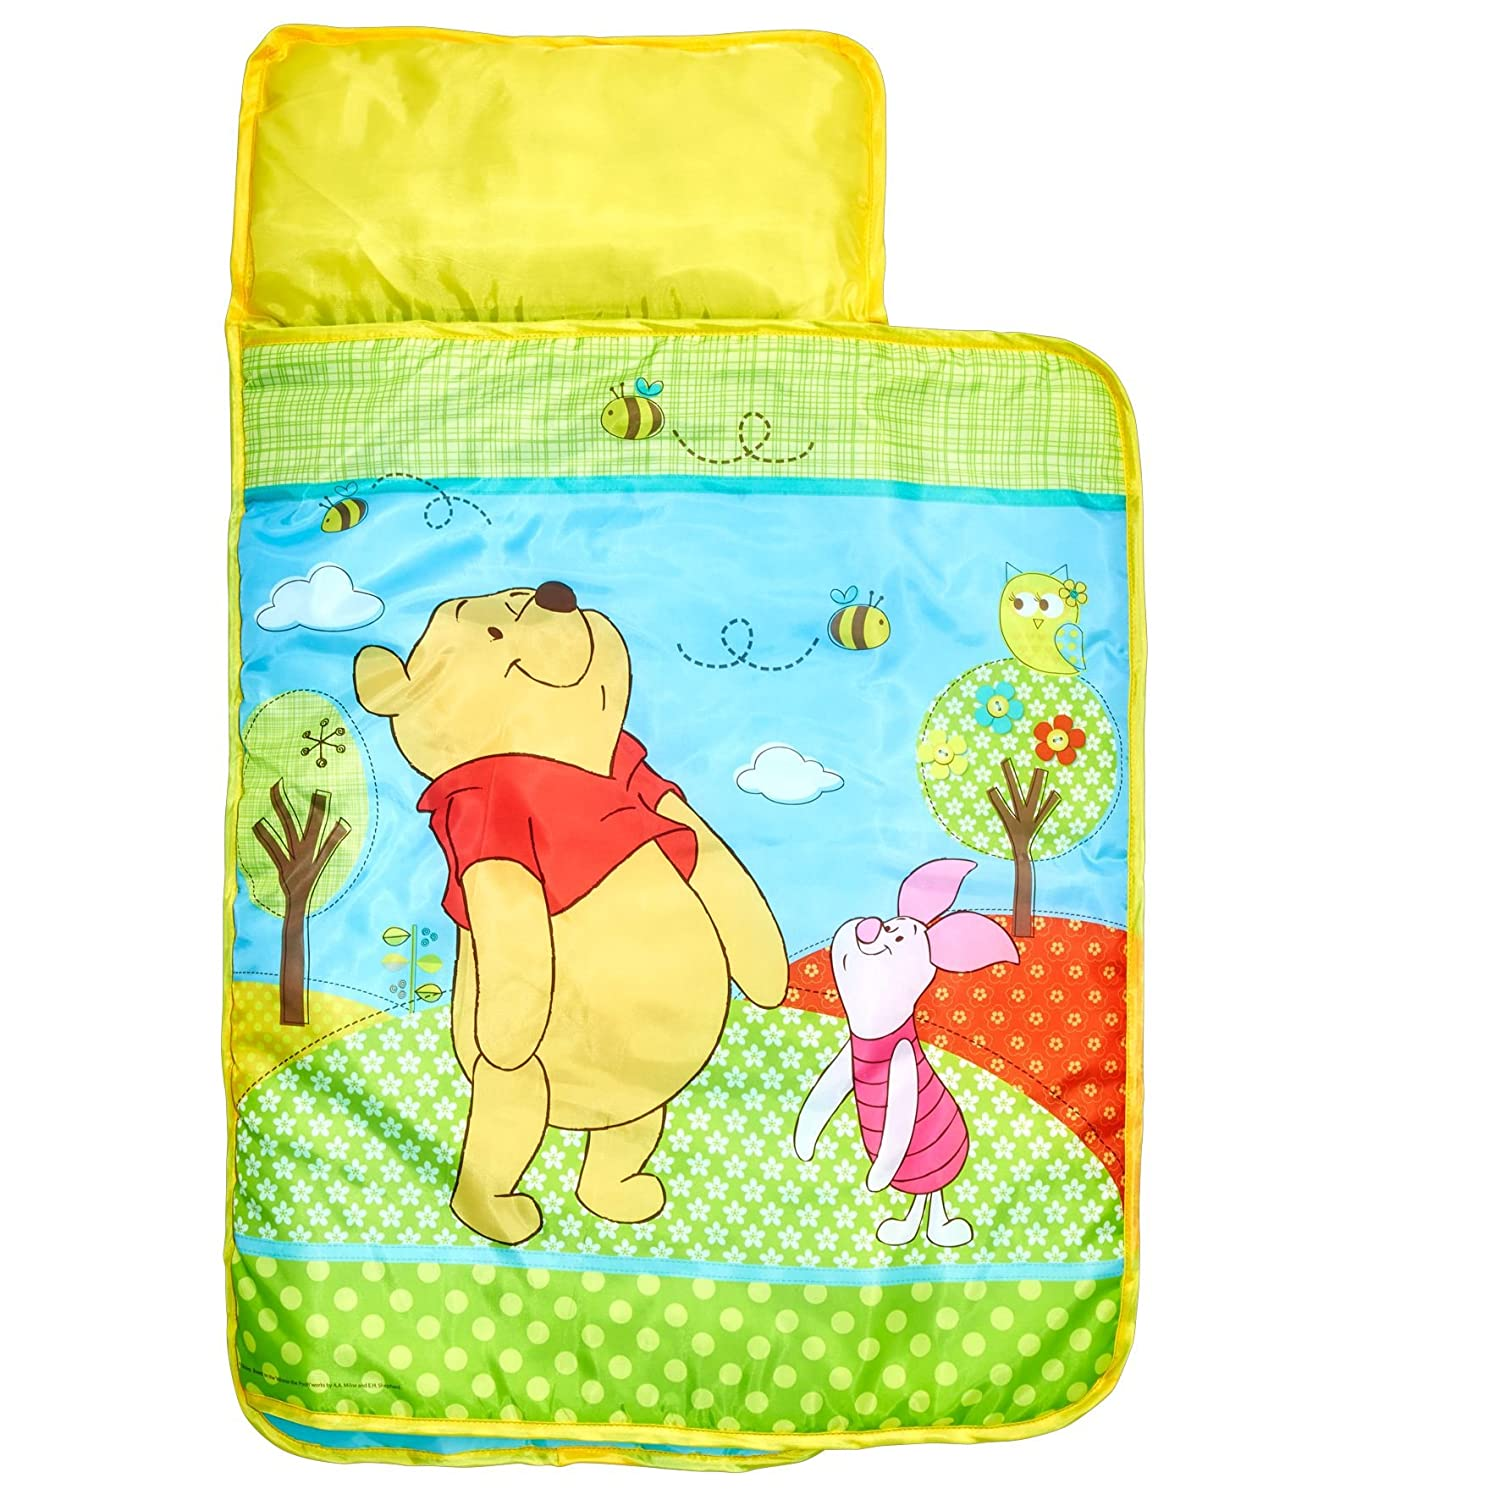 Worlds Apart Winnie The Pooh Letto per Sonnellino, Poliestere,, 110 x 72 x 8 cm 412WIE